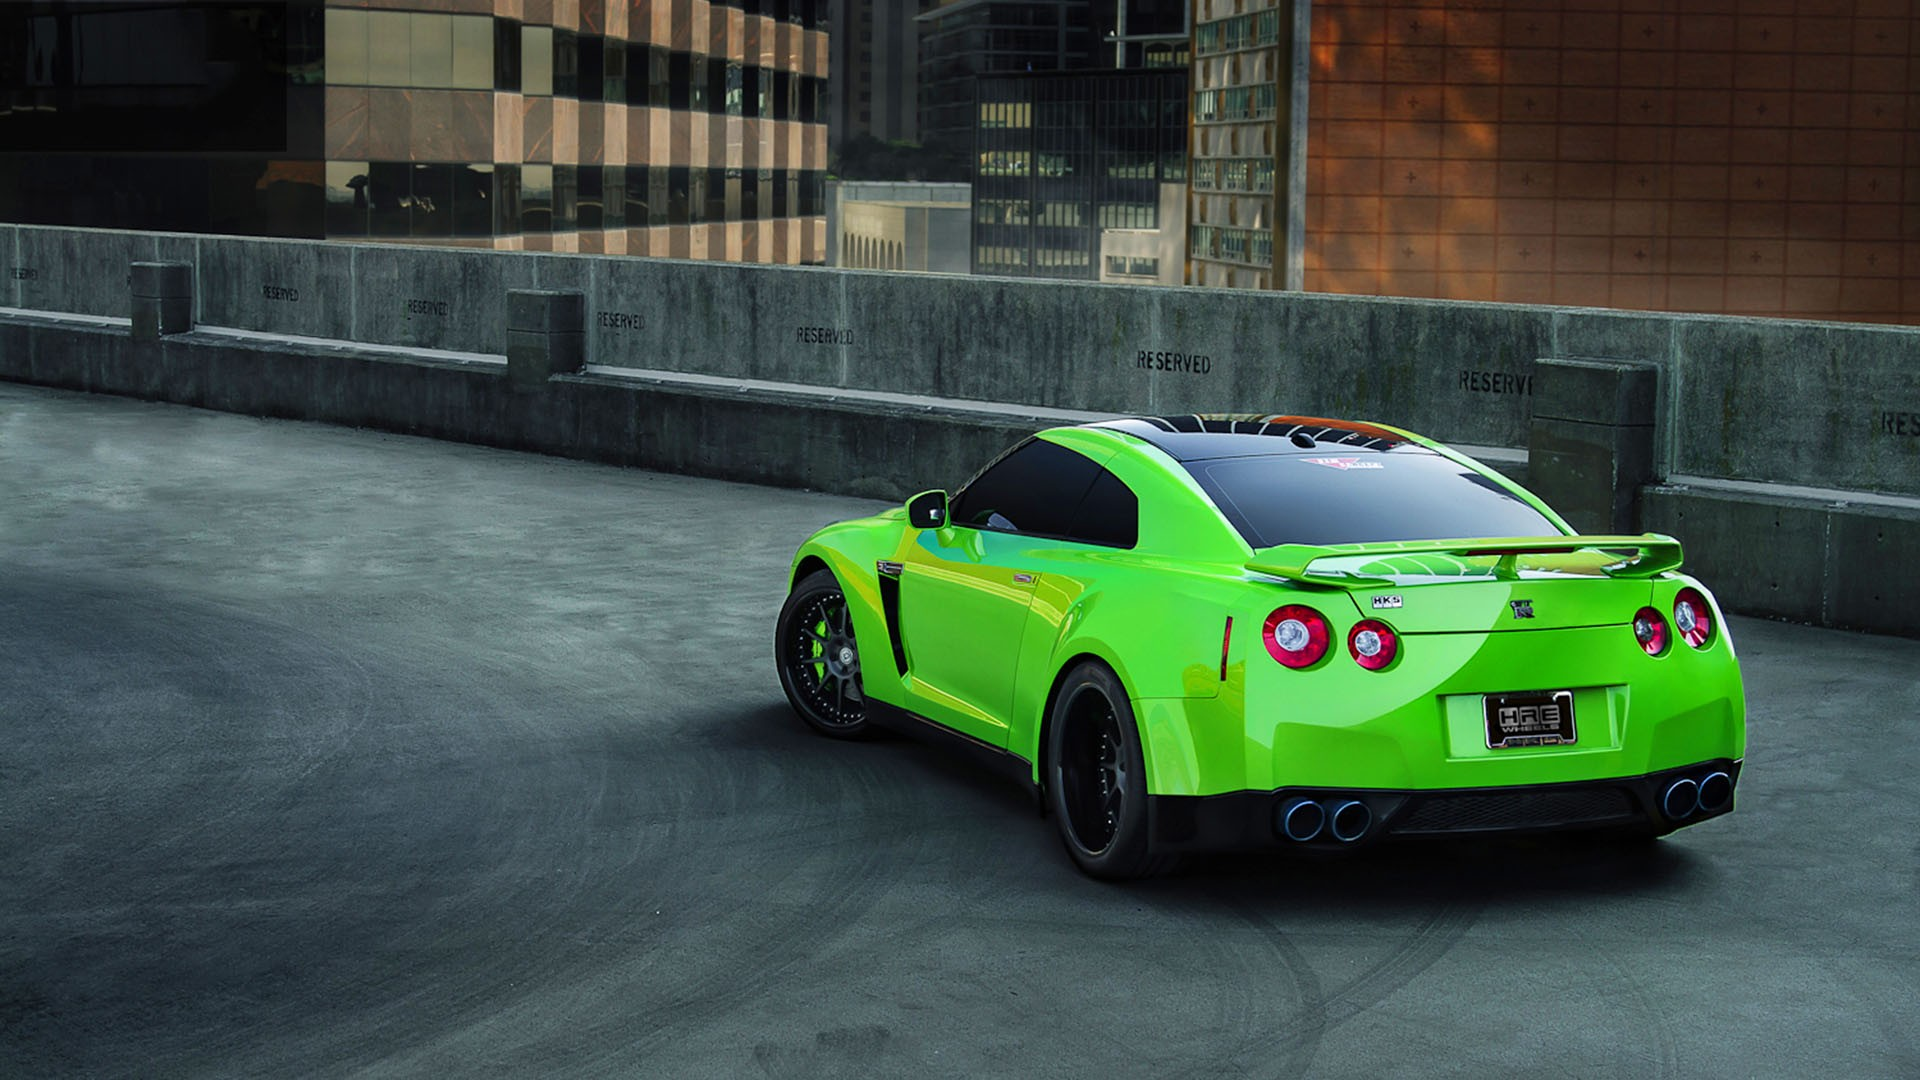 Nissan Skyline Crossover Impul Bodykit as well Nismo Festival Nissan R Gtr moreover Toyota Alphard Welcab together with Gtaiv as well Nissan Skyline Gt Nissan Jdm Hakosuka. on 2016 nissan skyline gtr